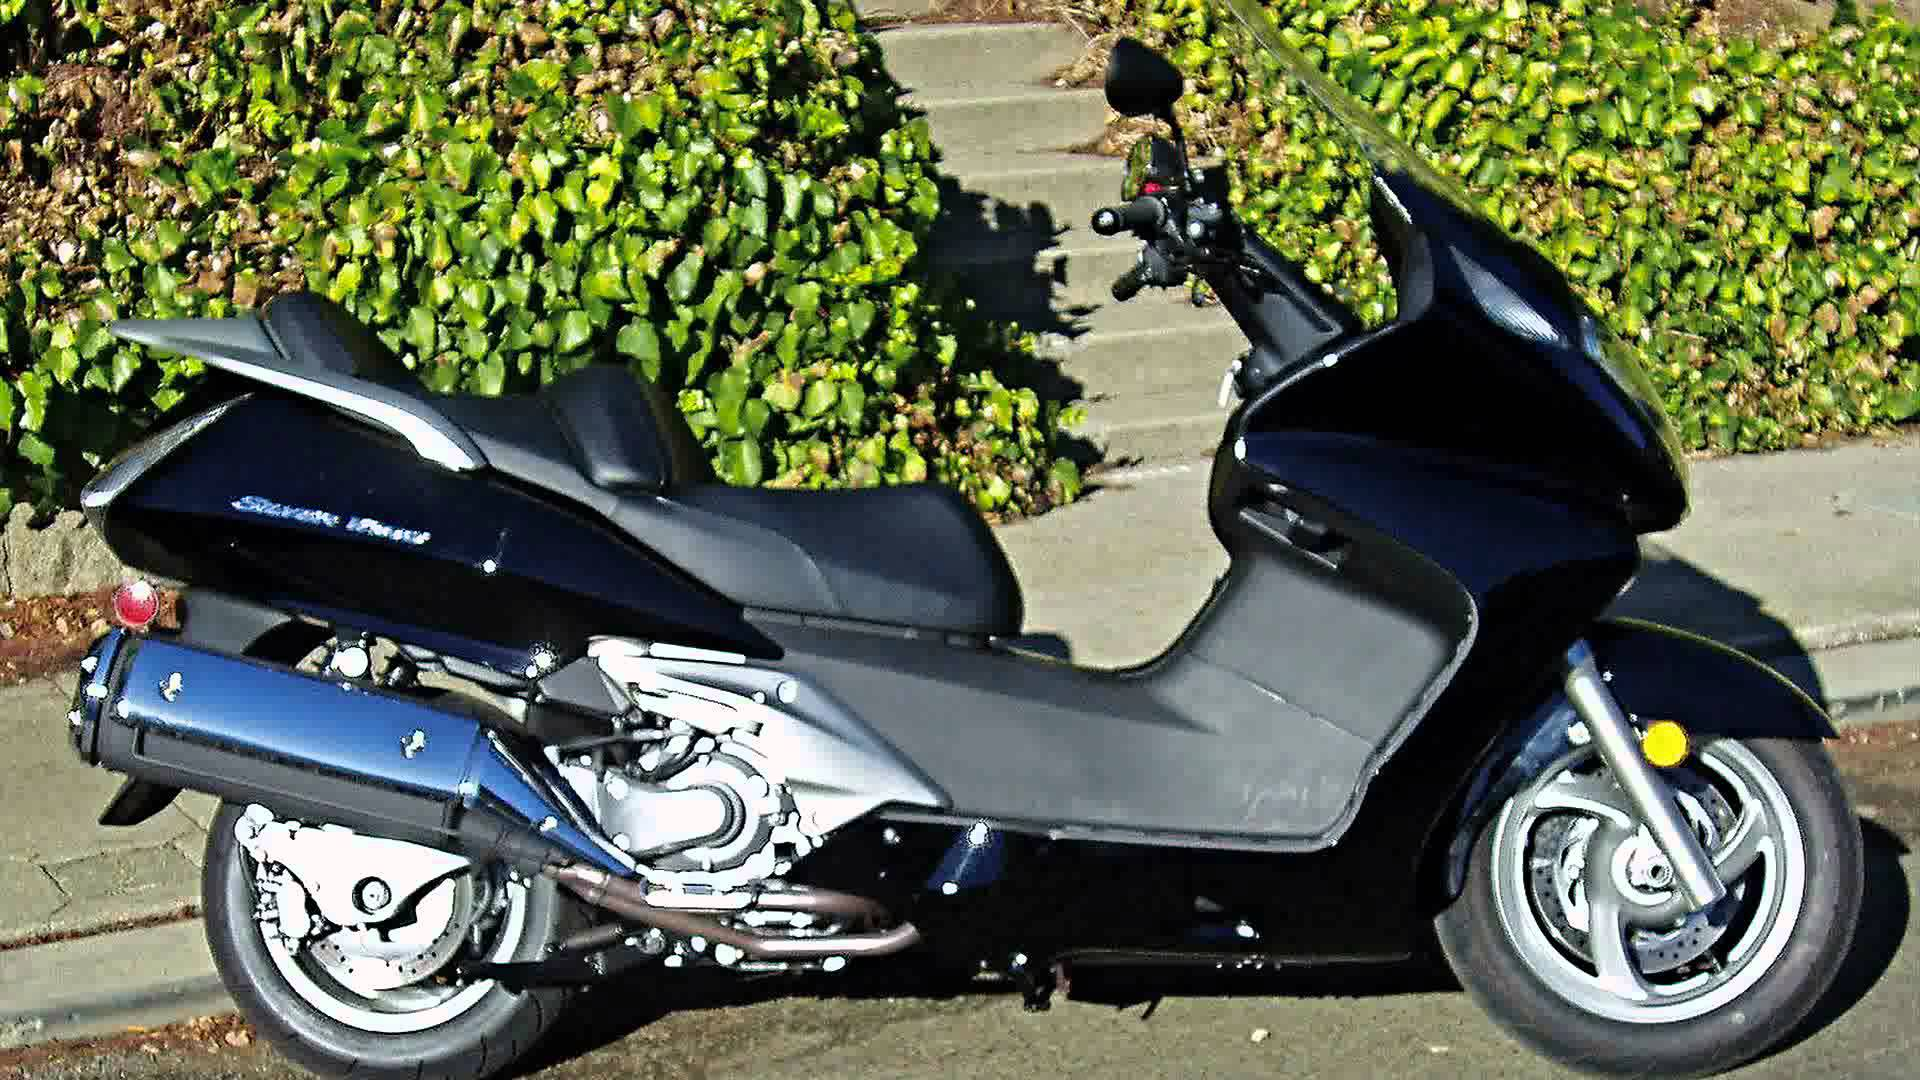 Honda Silver Wing 2007 images #83015